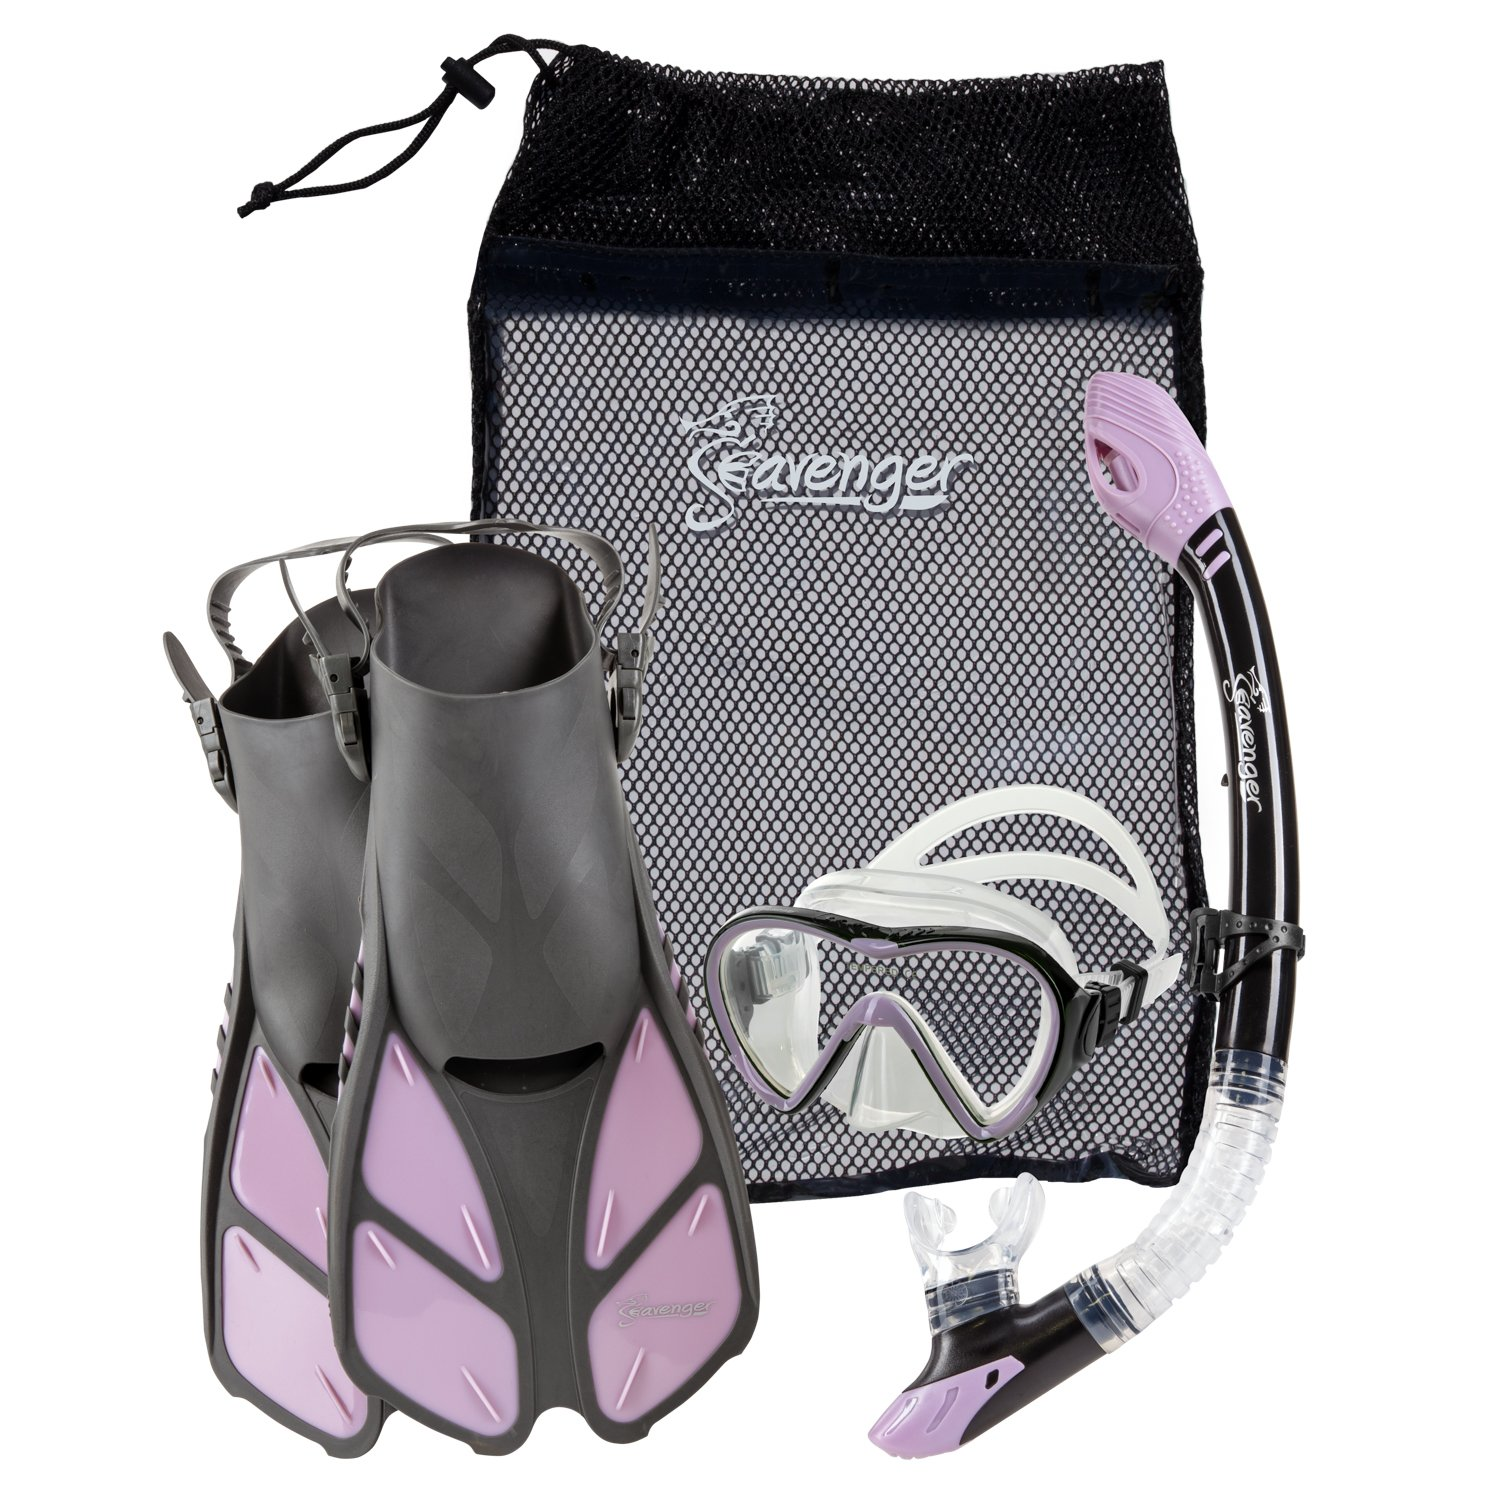 Seavenger Diving Dry Top Snorkel Set with Trek Fin, Single Lens Mask and Gear Bag, S/M - Size 4.5 to 8.5, Gray/Lavender by Seavenger